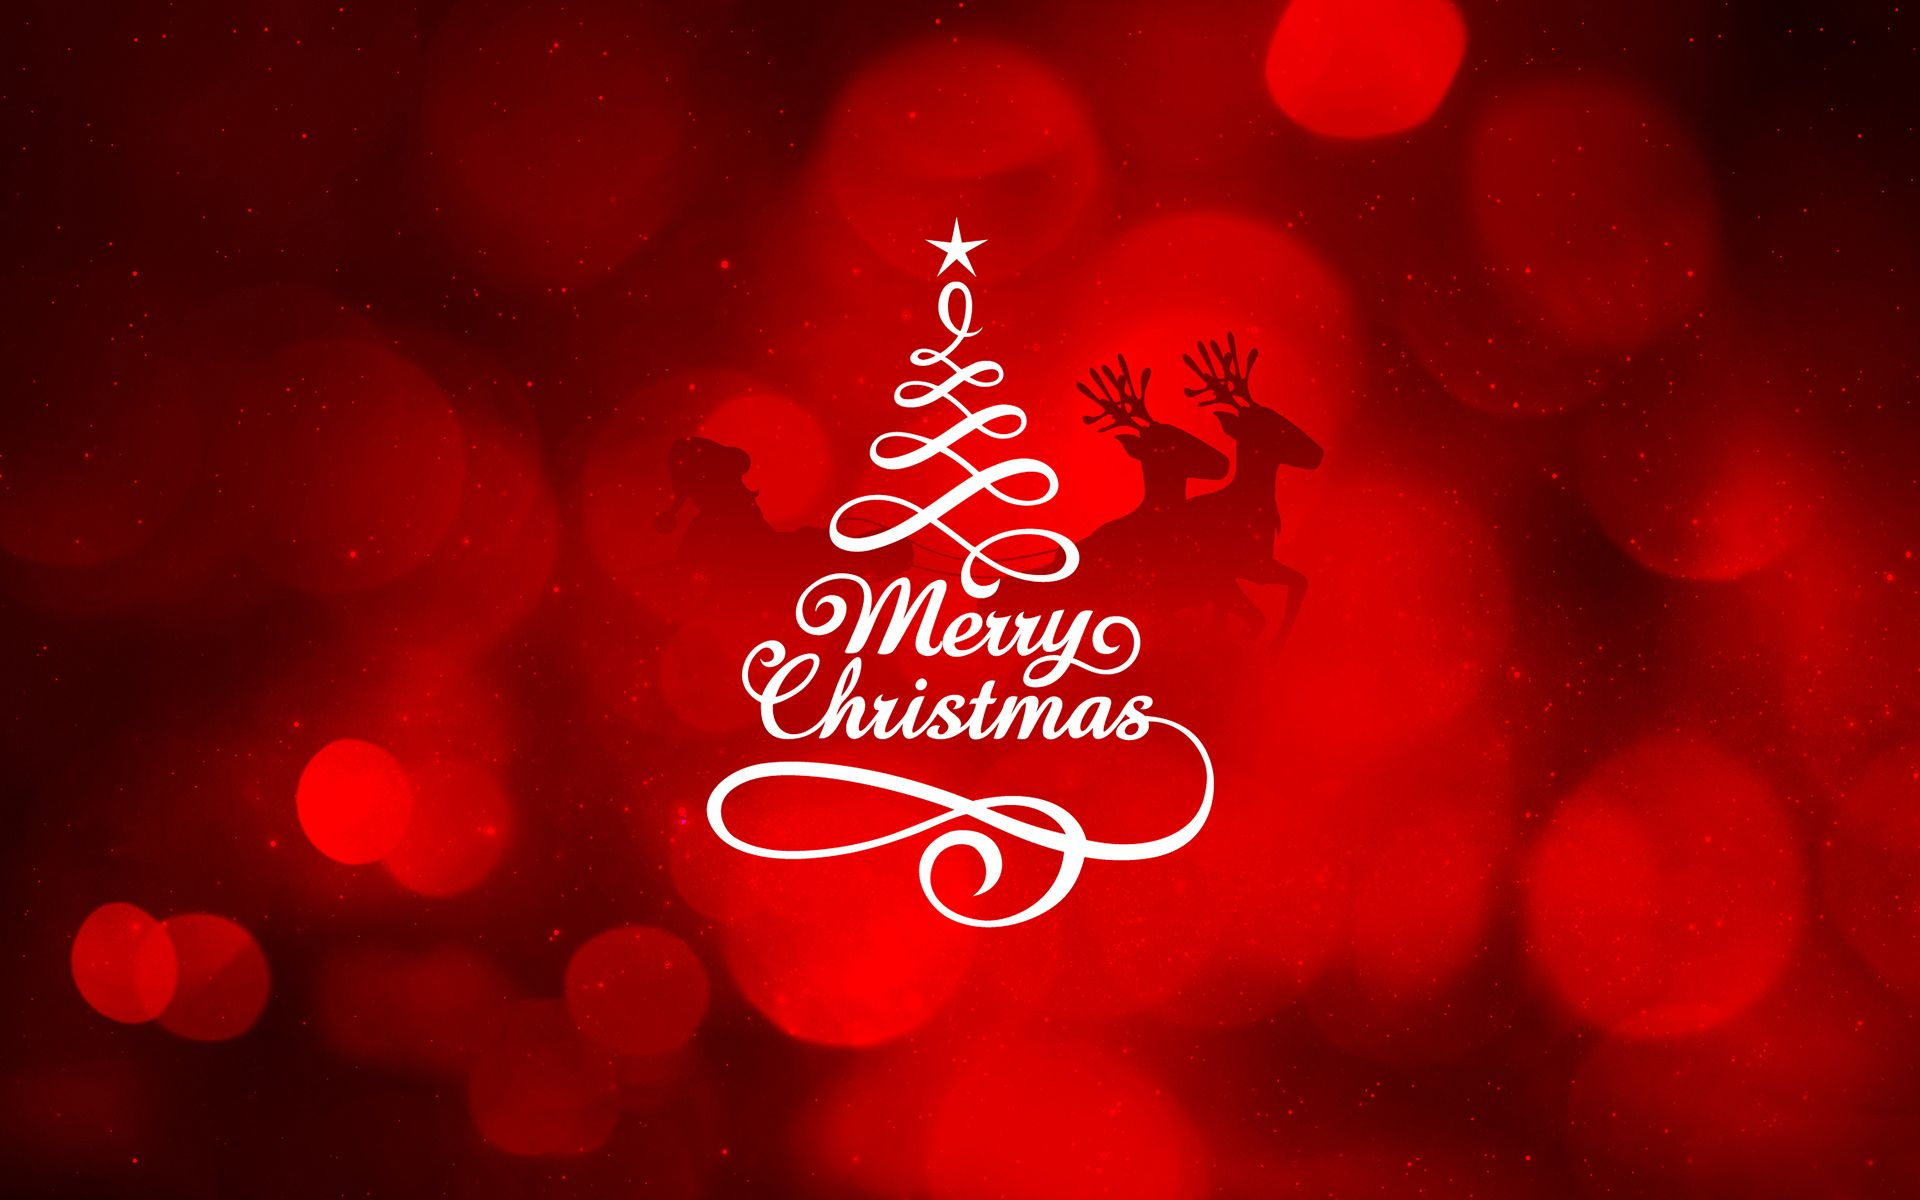 Seasons Greetings From Eglobal Central Uk We Wish You A Merry